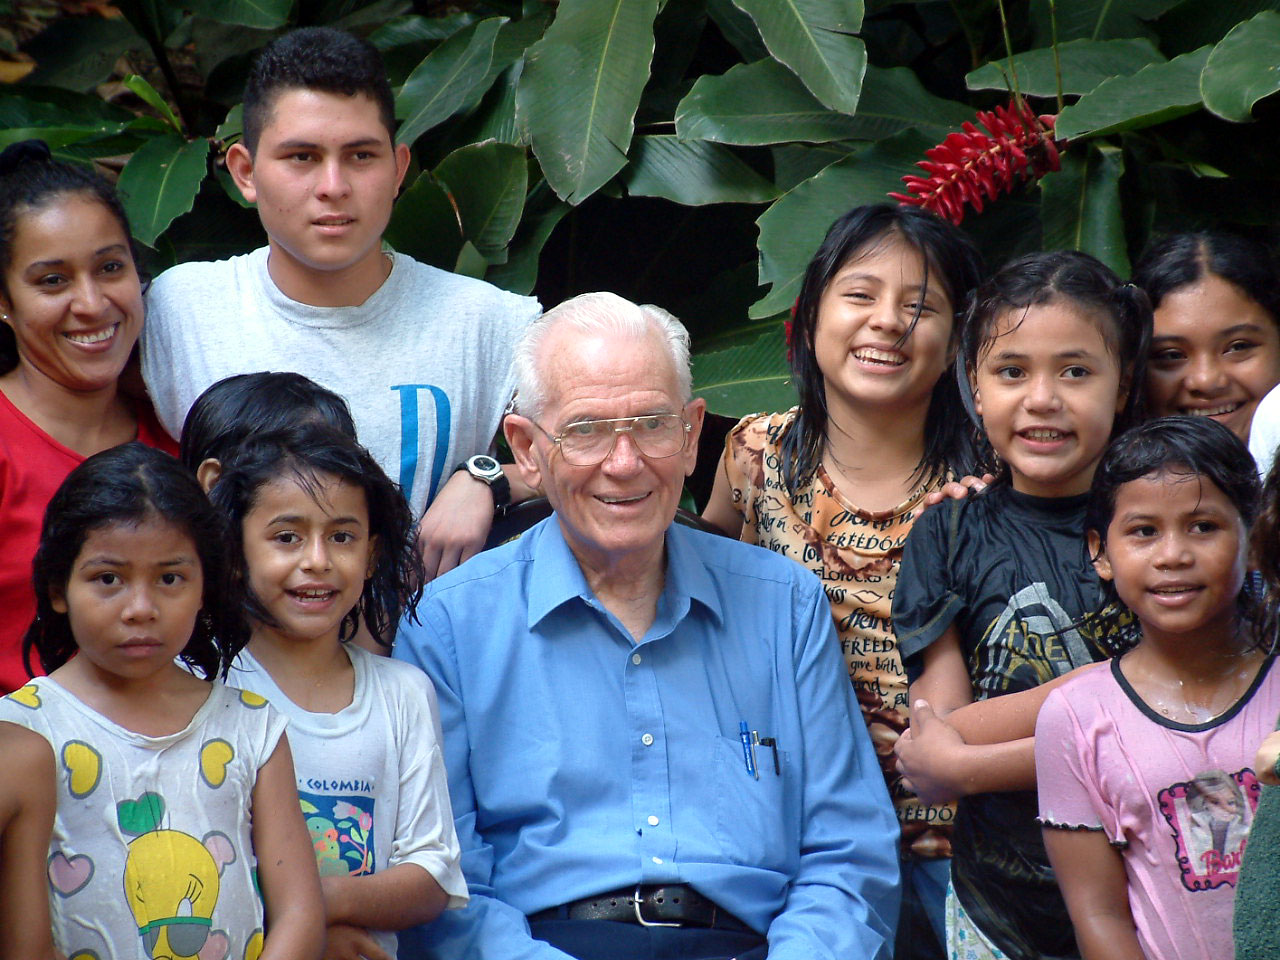 Fr. Wasson in El Salvador in 2003